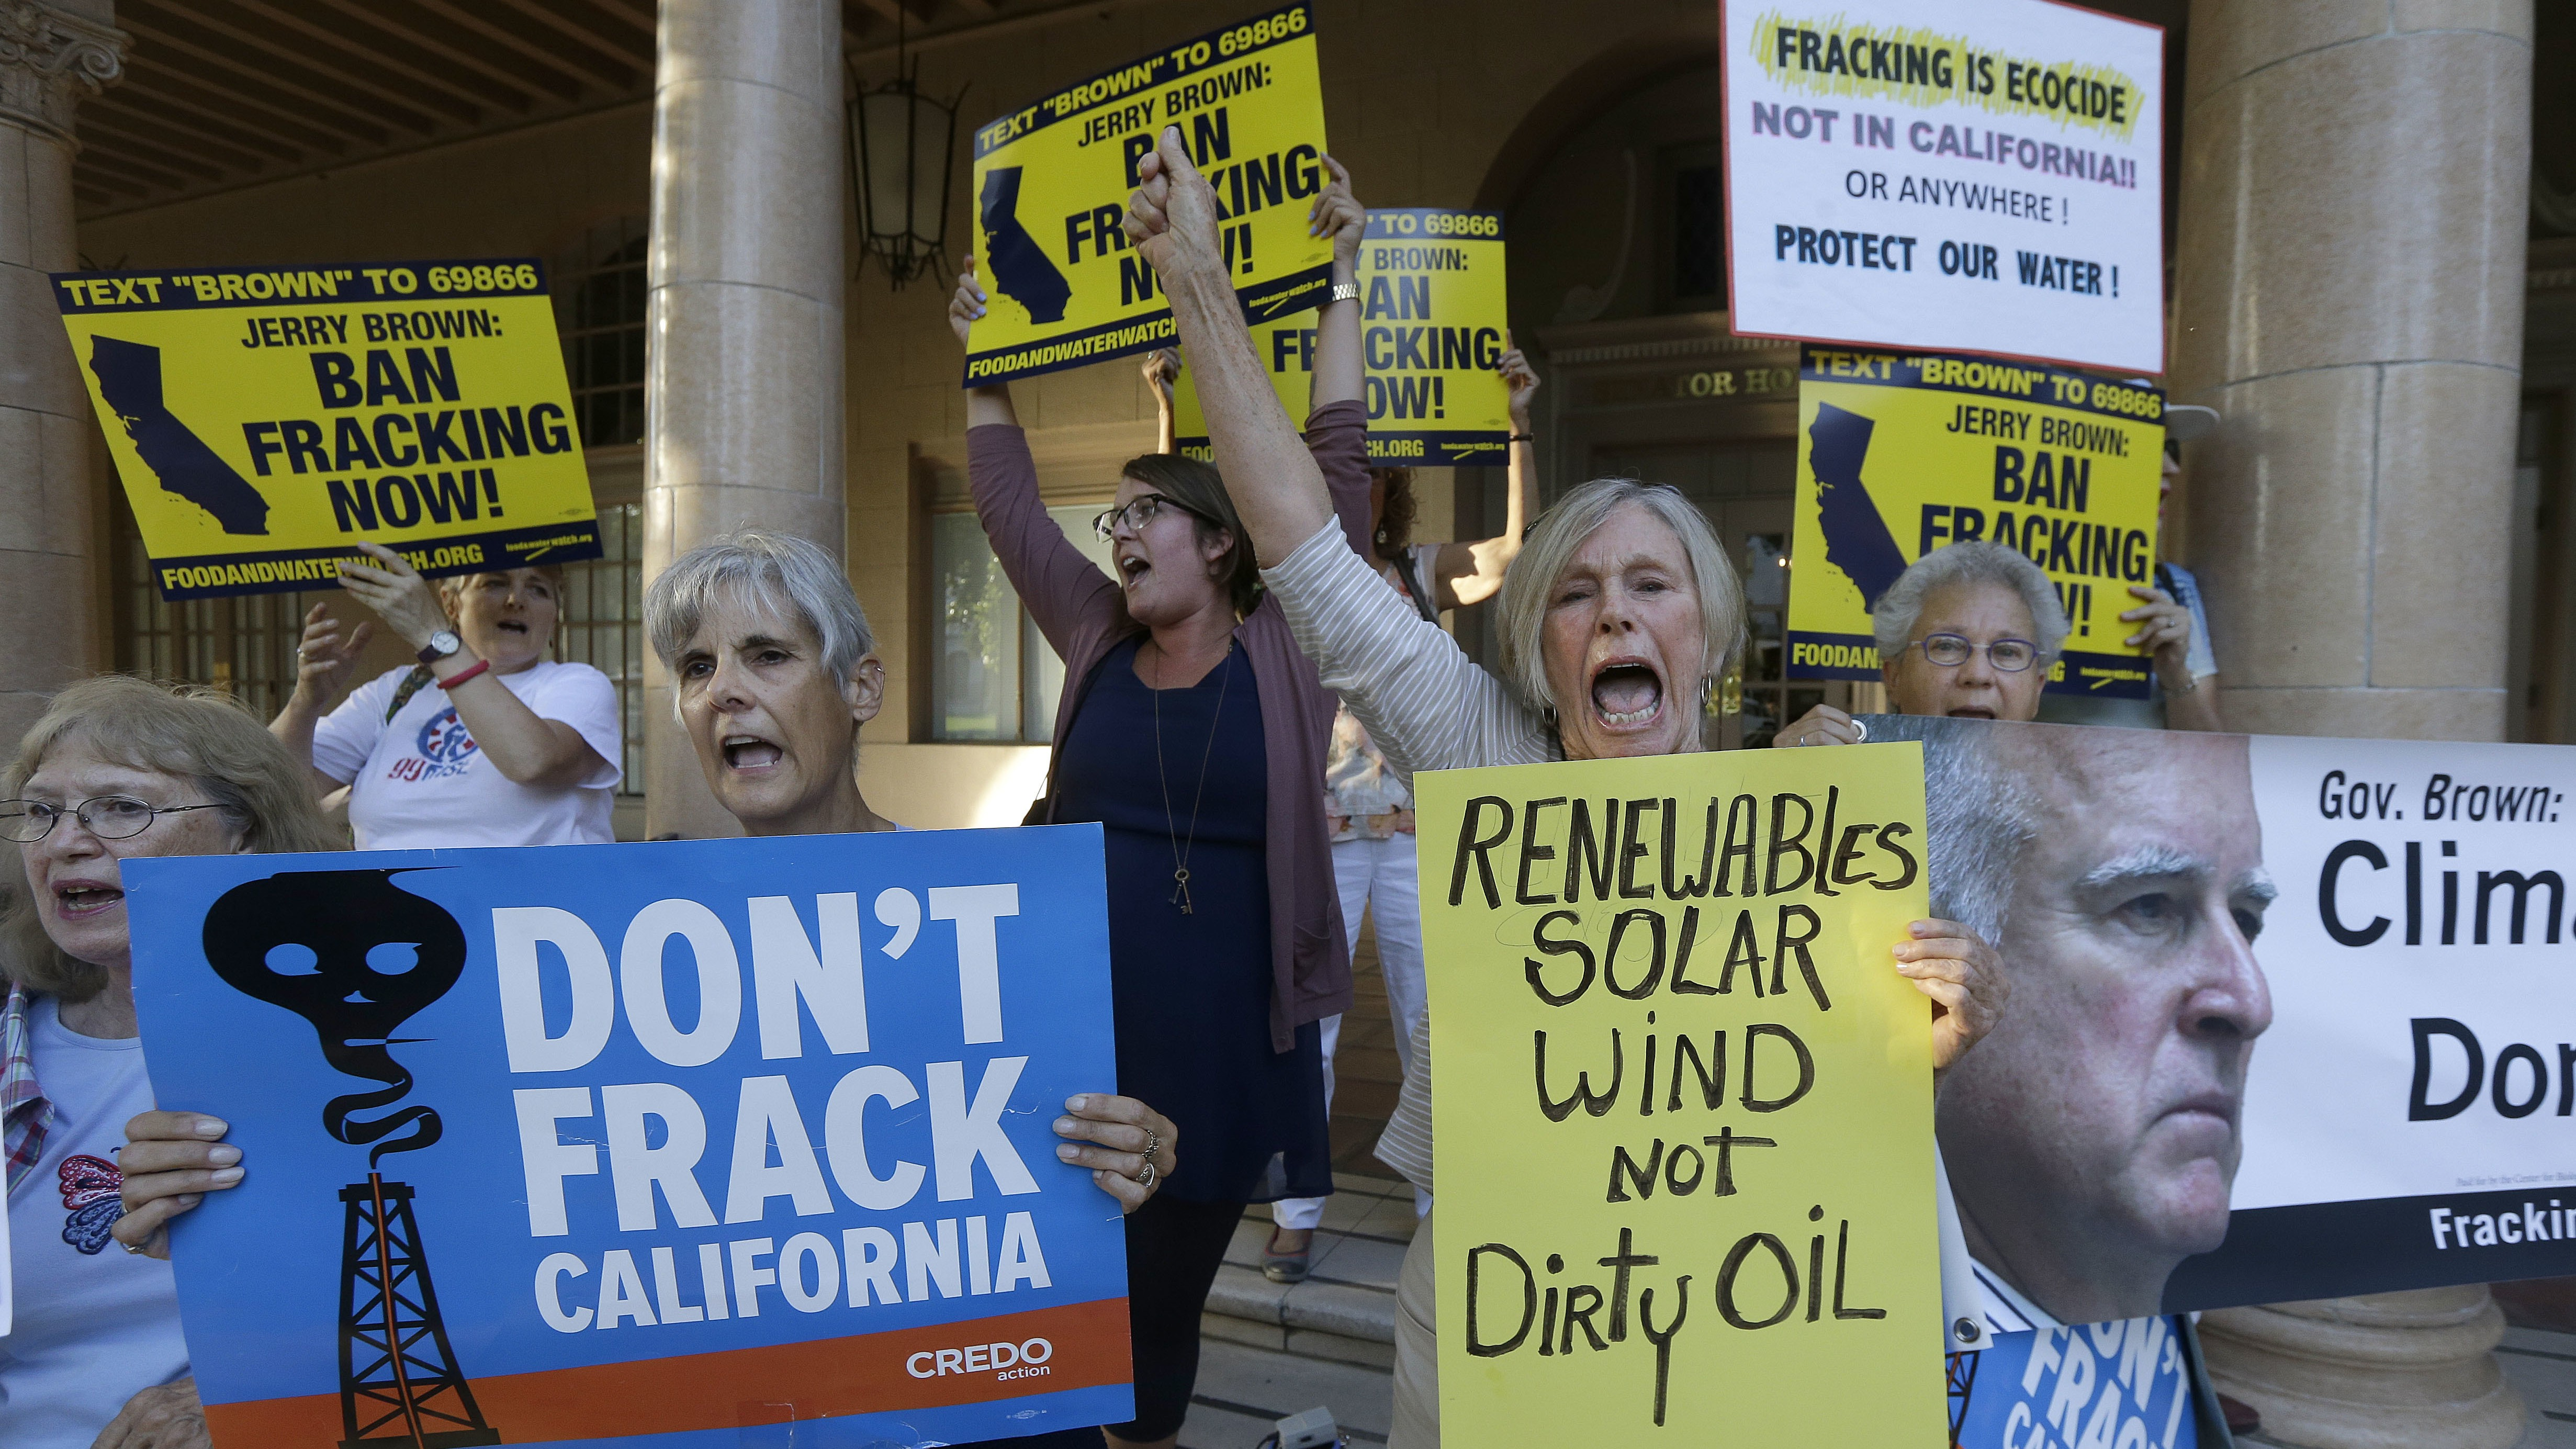 The Oil Industry Is Pumping Toxic Chemicals Into California's Aquifers